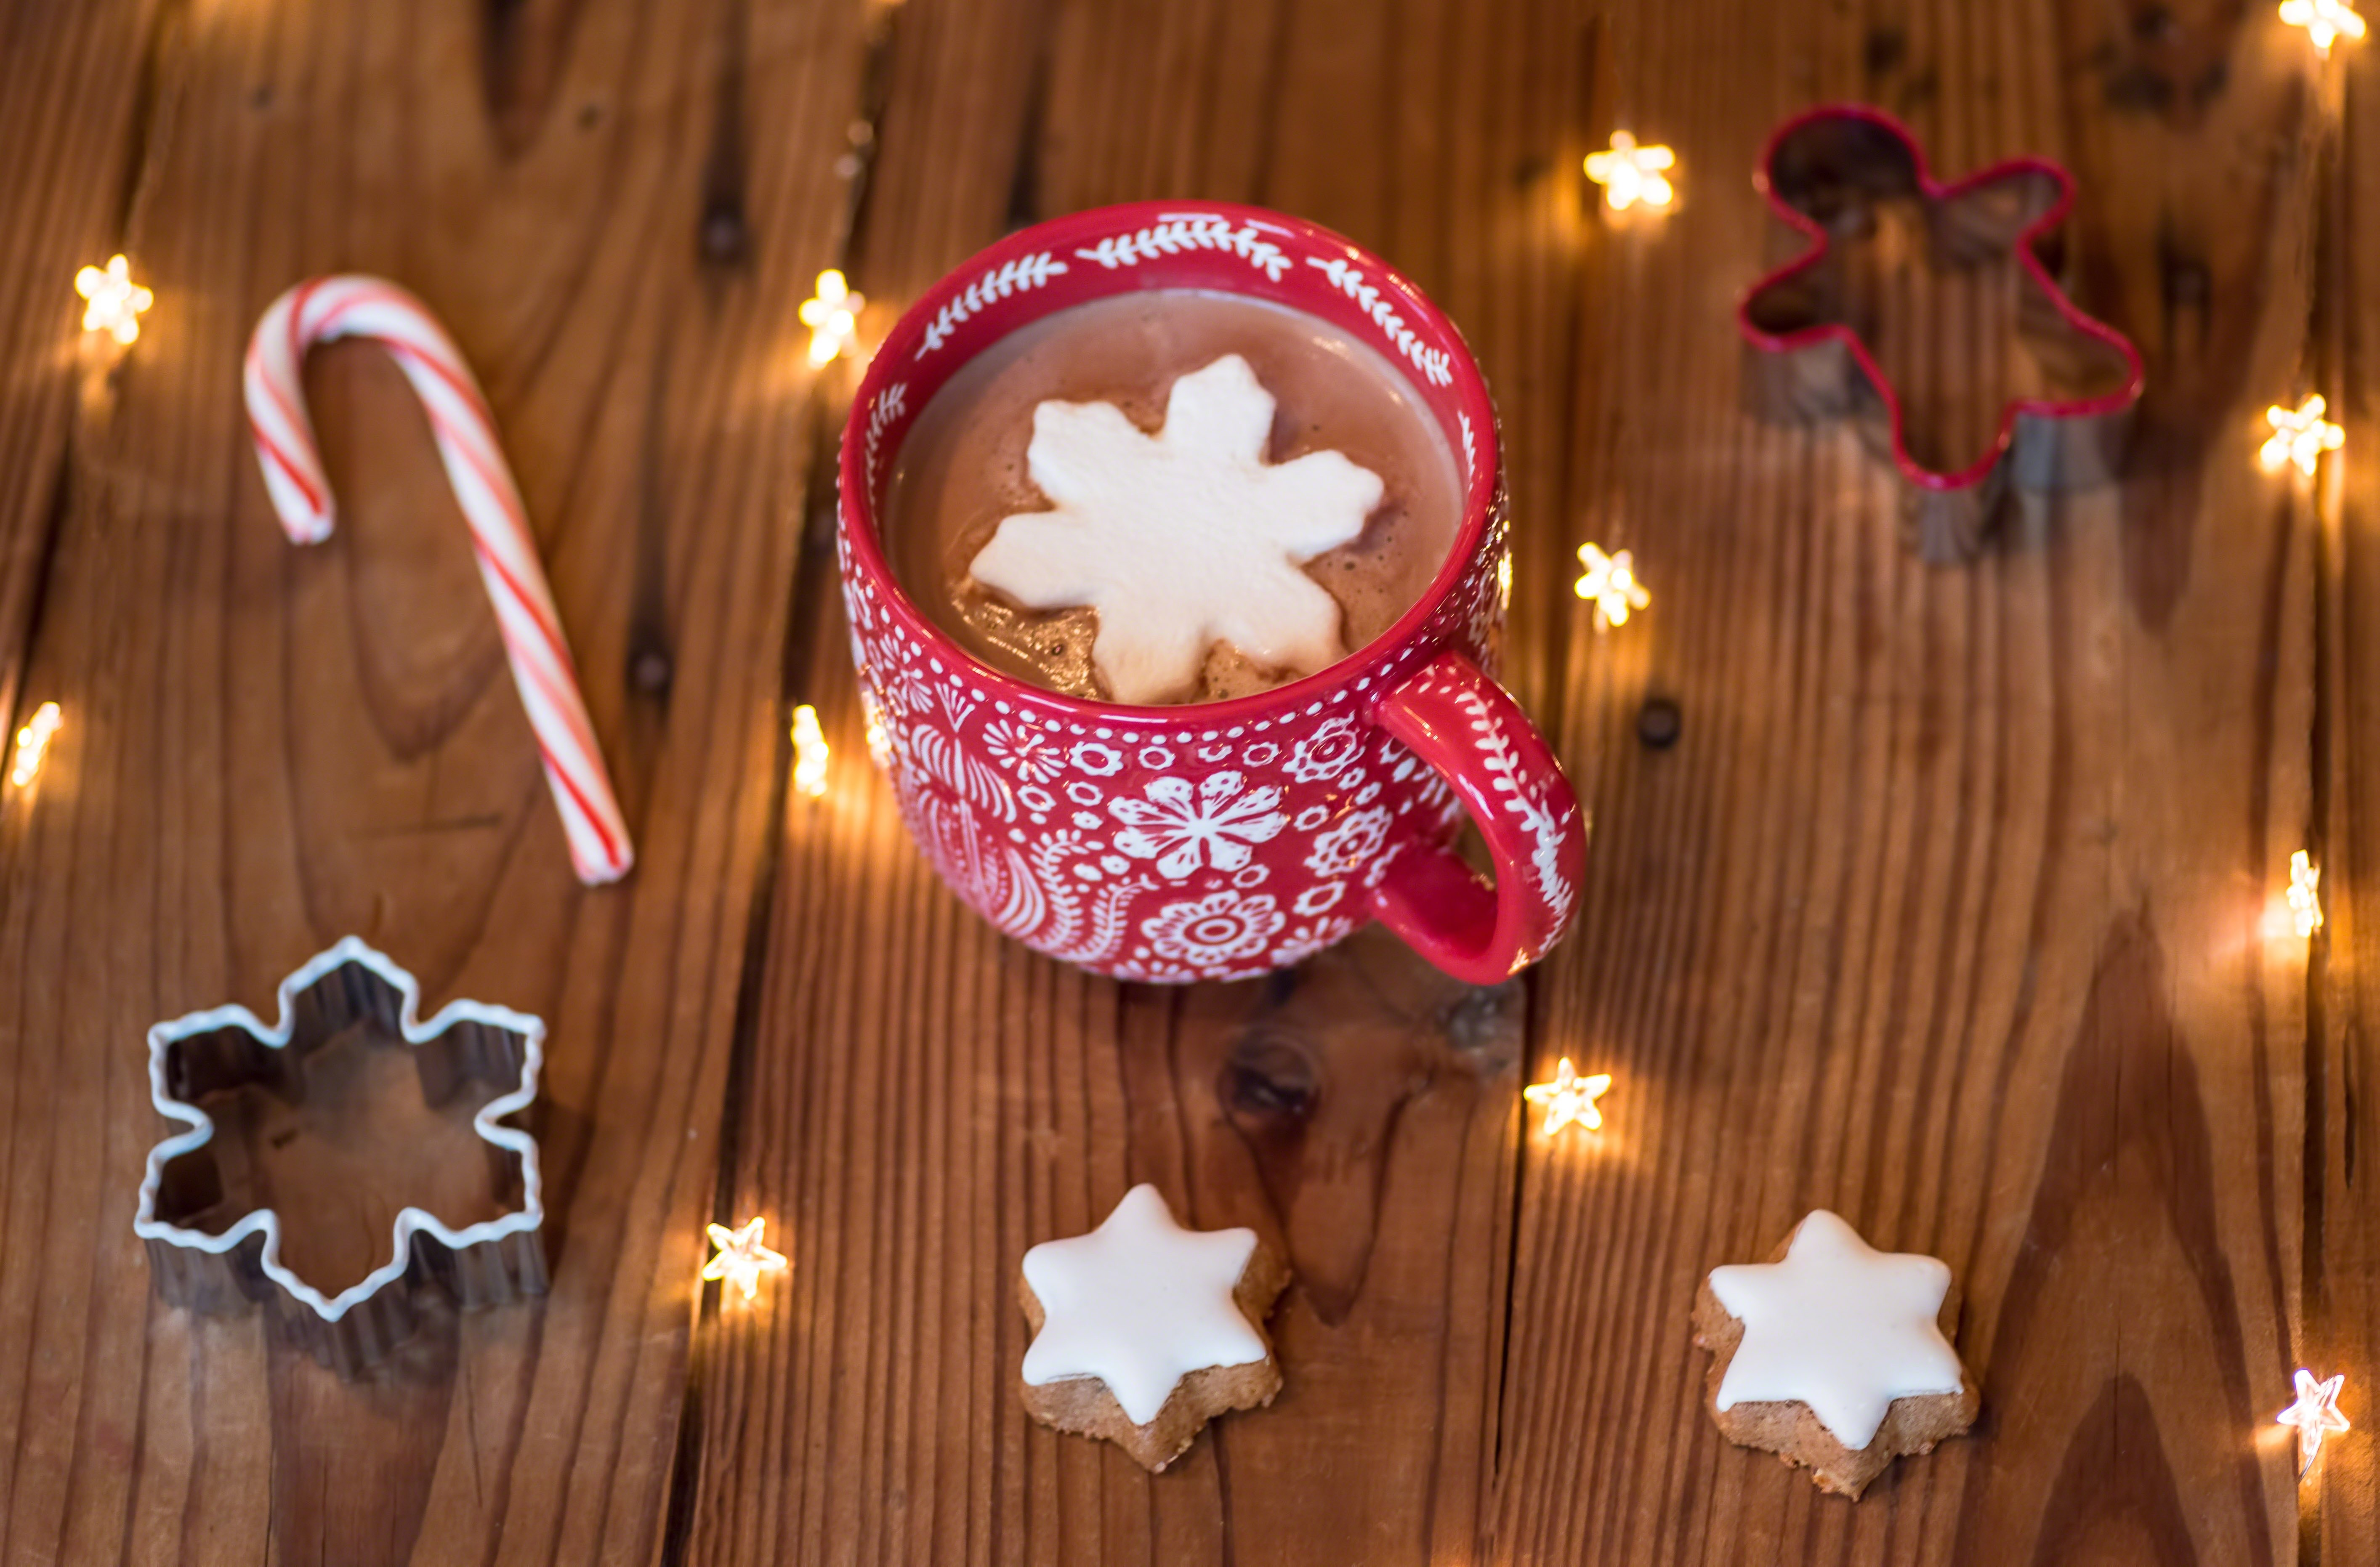 7 Healthier Alternatives to Your Favorite Cozy Holiday Drink Recipes